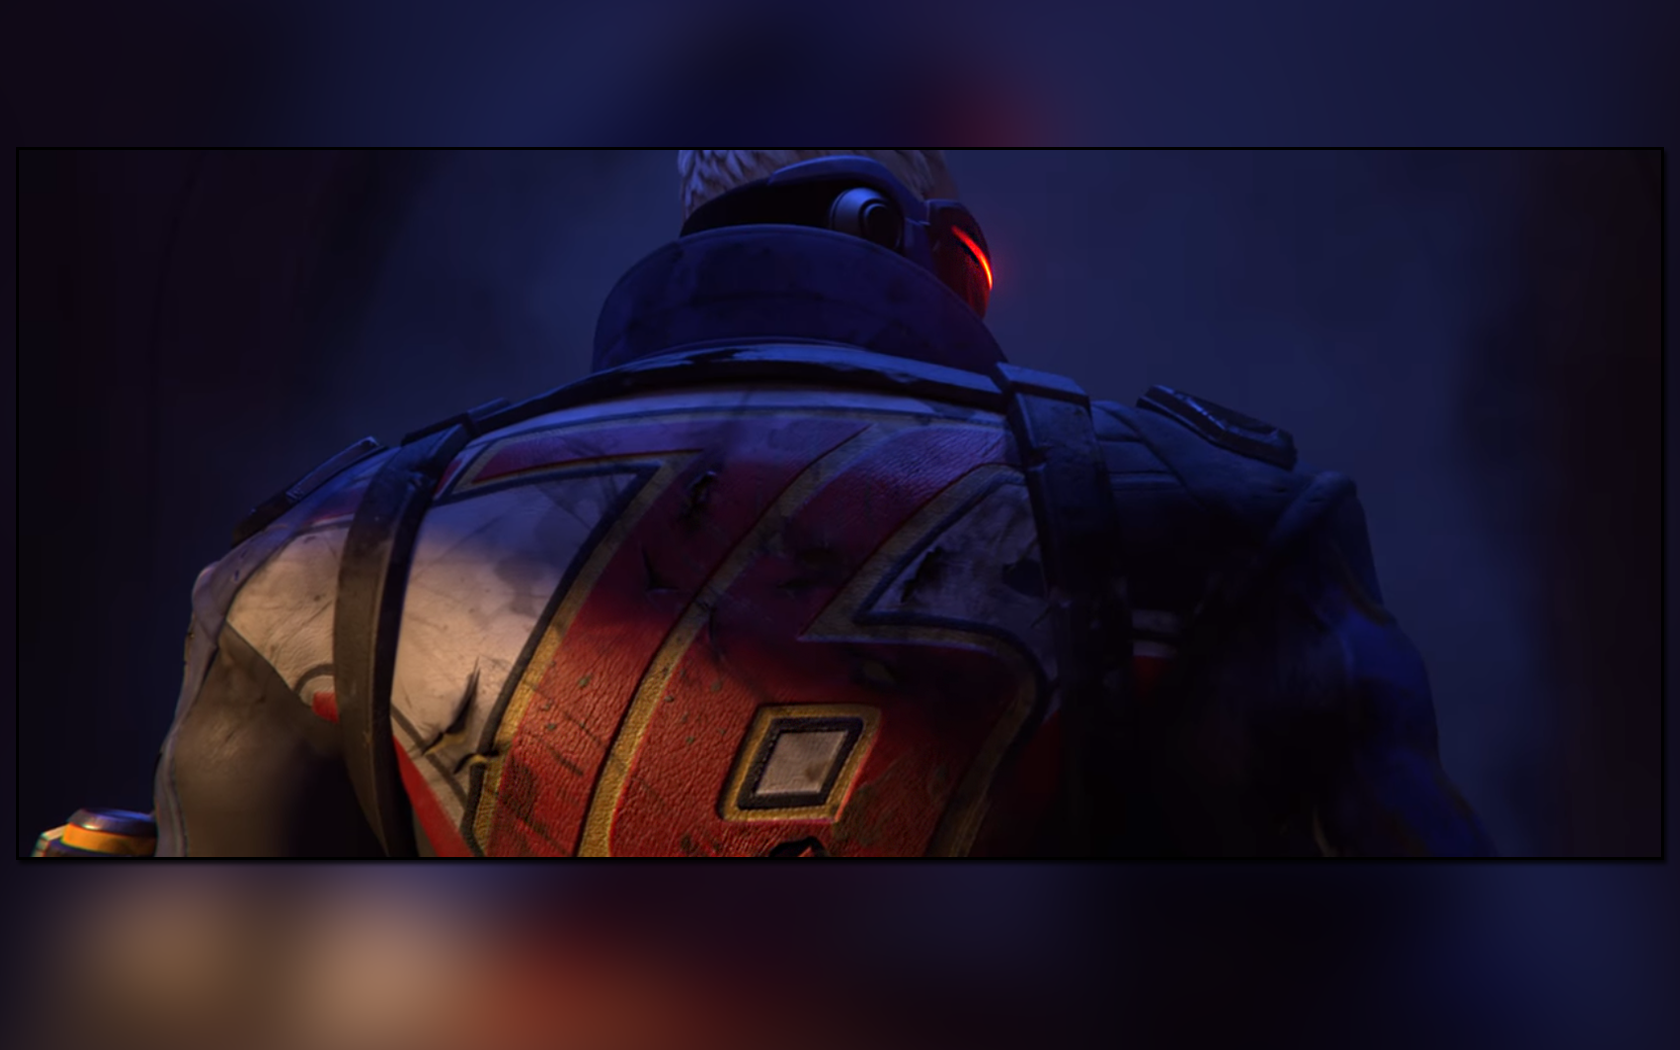 soldier 76 wallpaper - photo #7